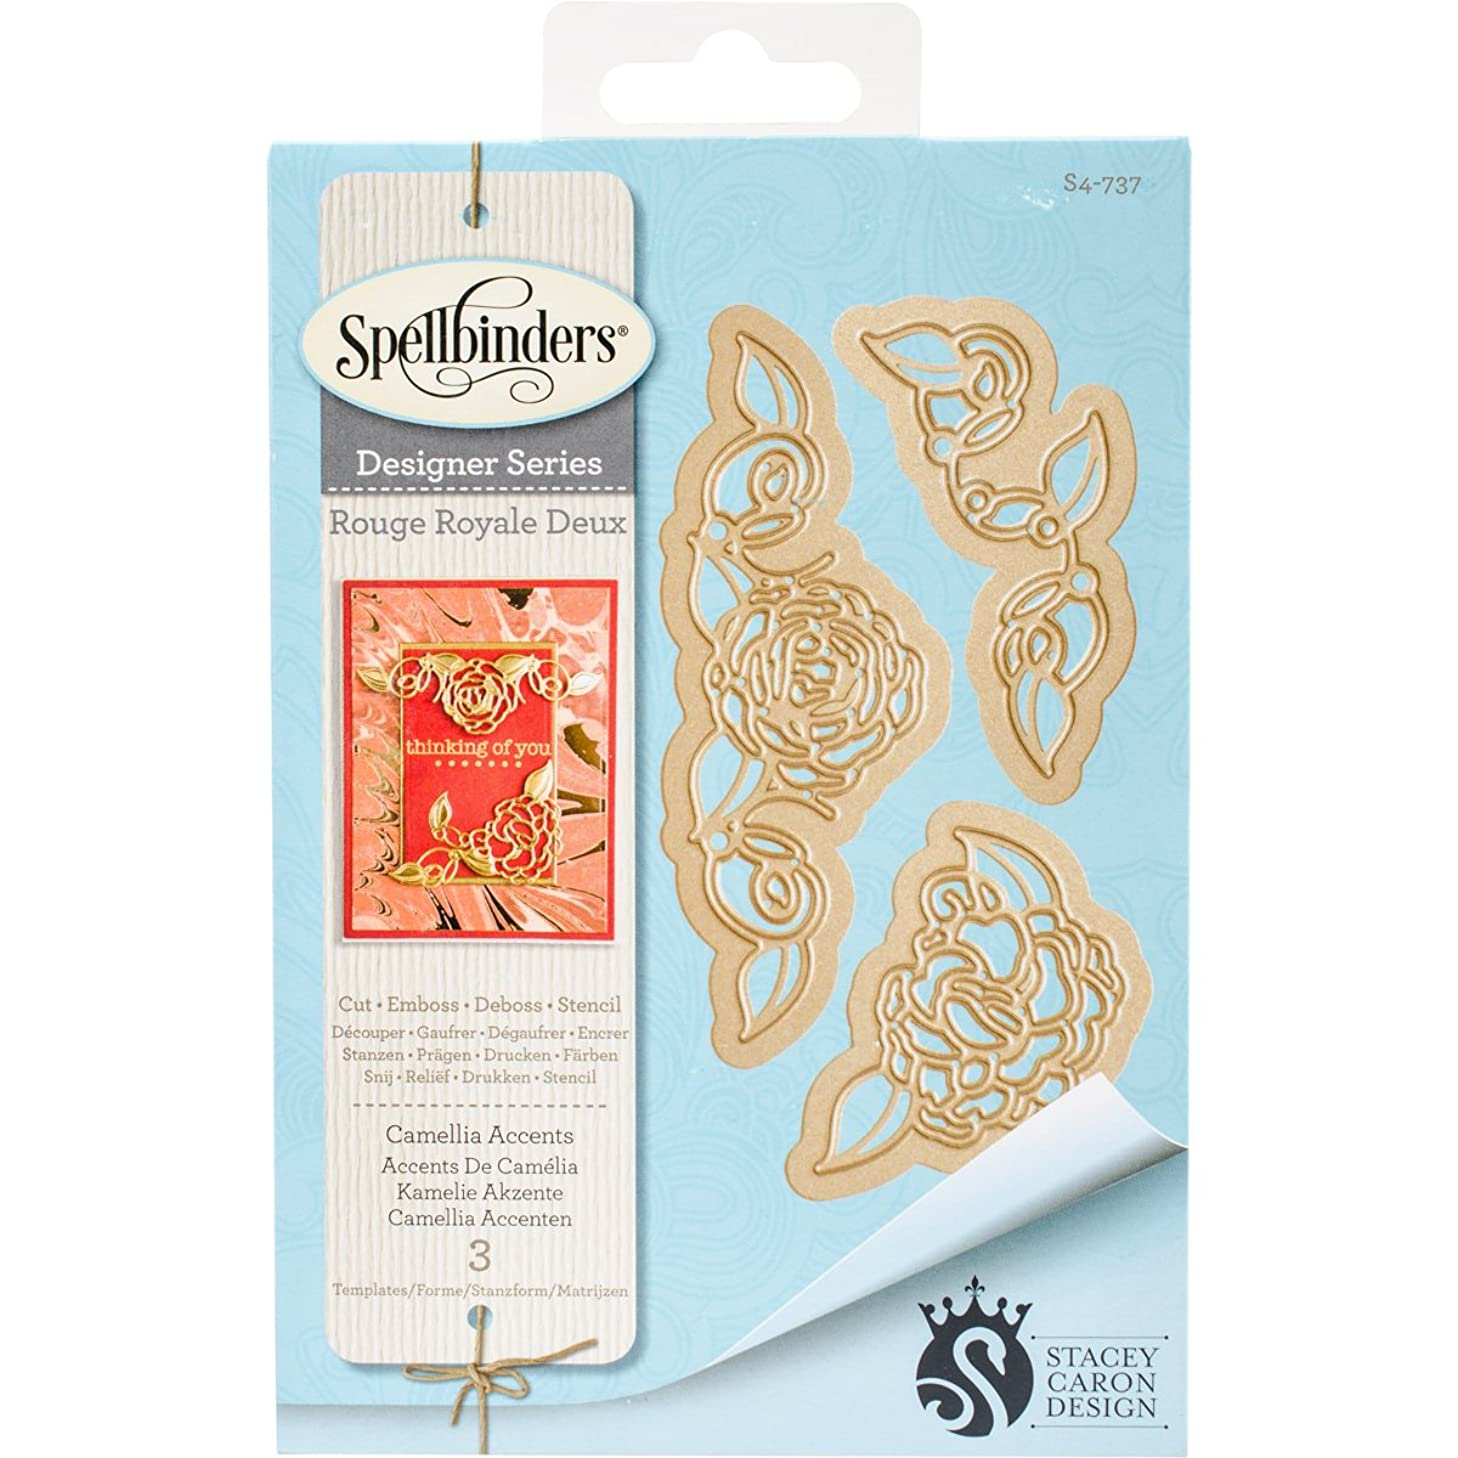 Spellbinders Camellia Accents Etched/Wafer Thin Dies